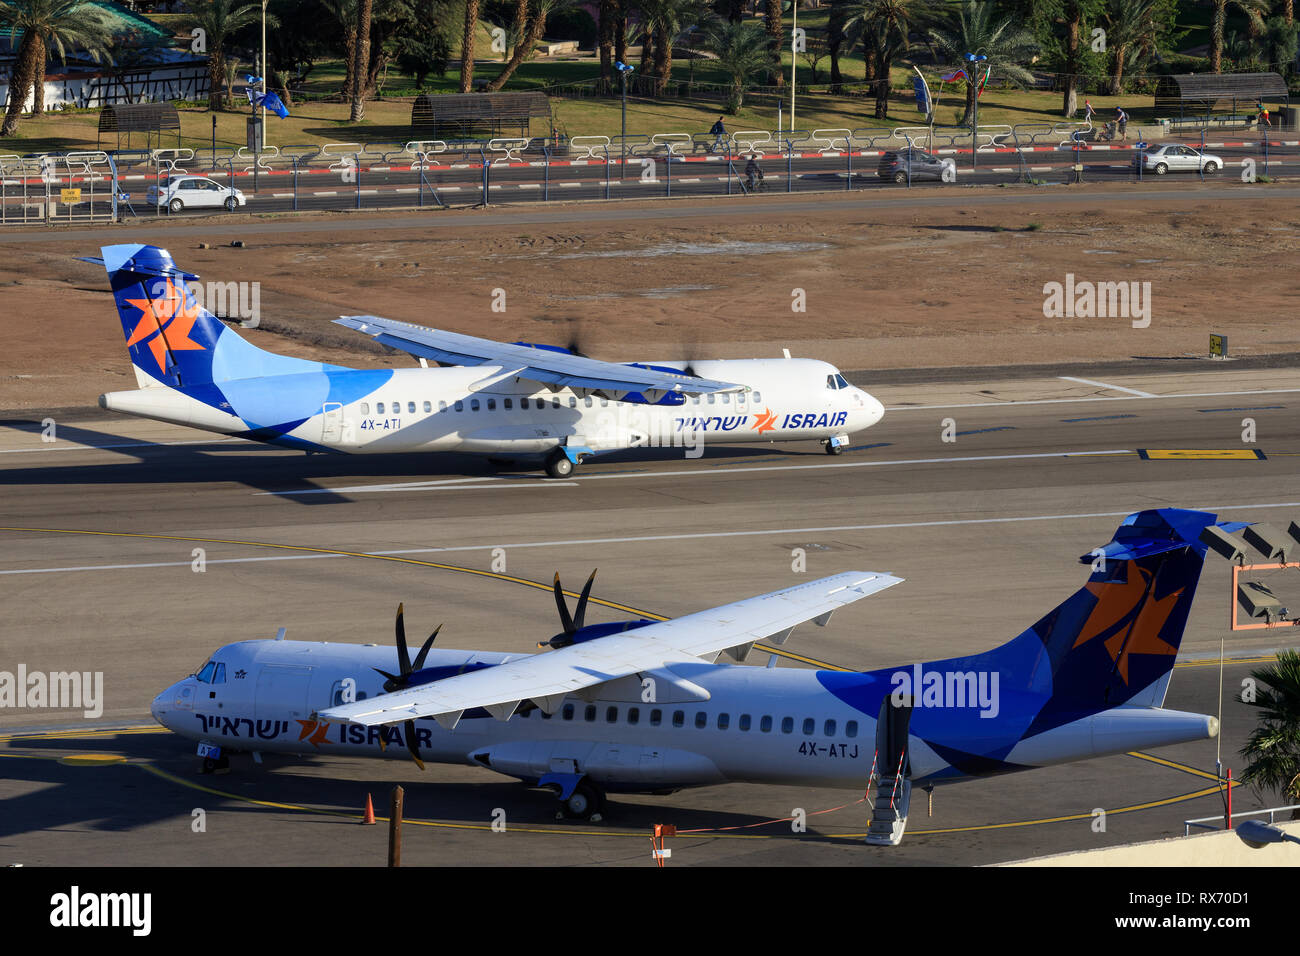 Eilat, ISRAEL-February 24, 2019: Israir Airlines ATR 72-200 at old Eilat international Airport. - Stock Image